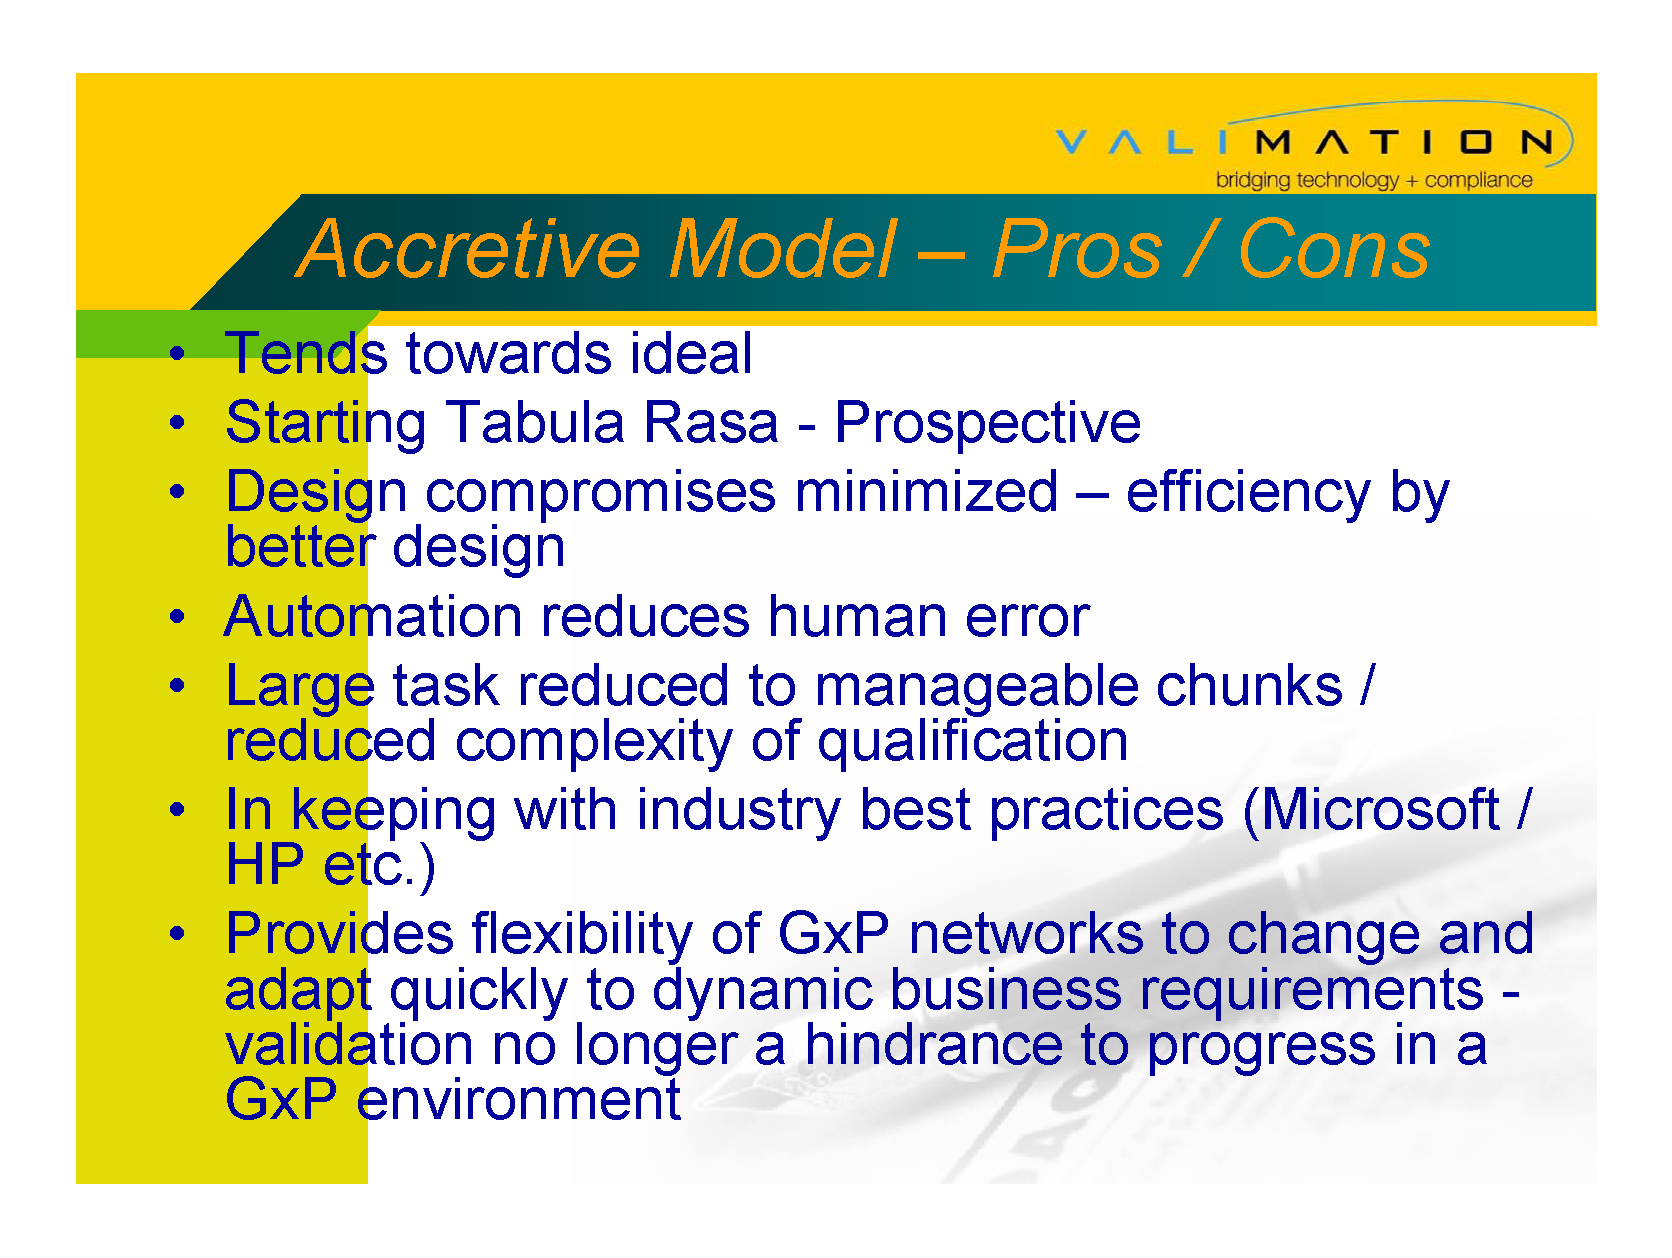 Network Qualification - Accretive Model By ValiMation_Page_24.png